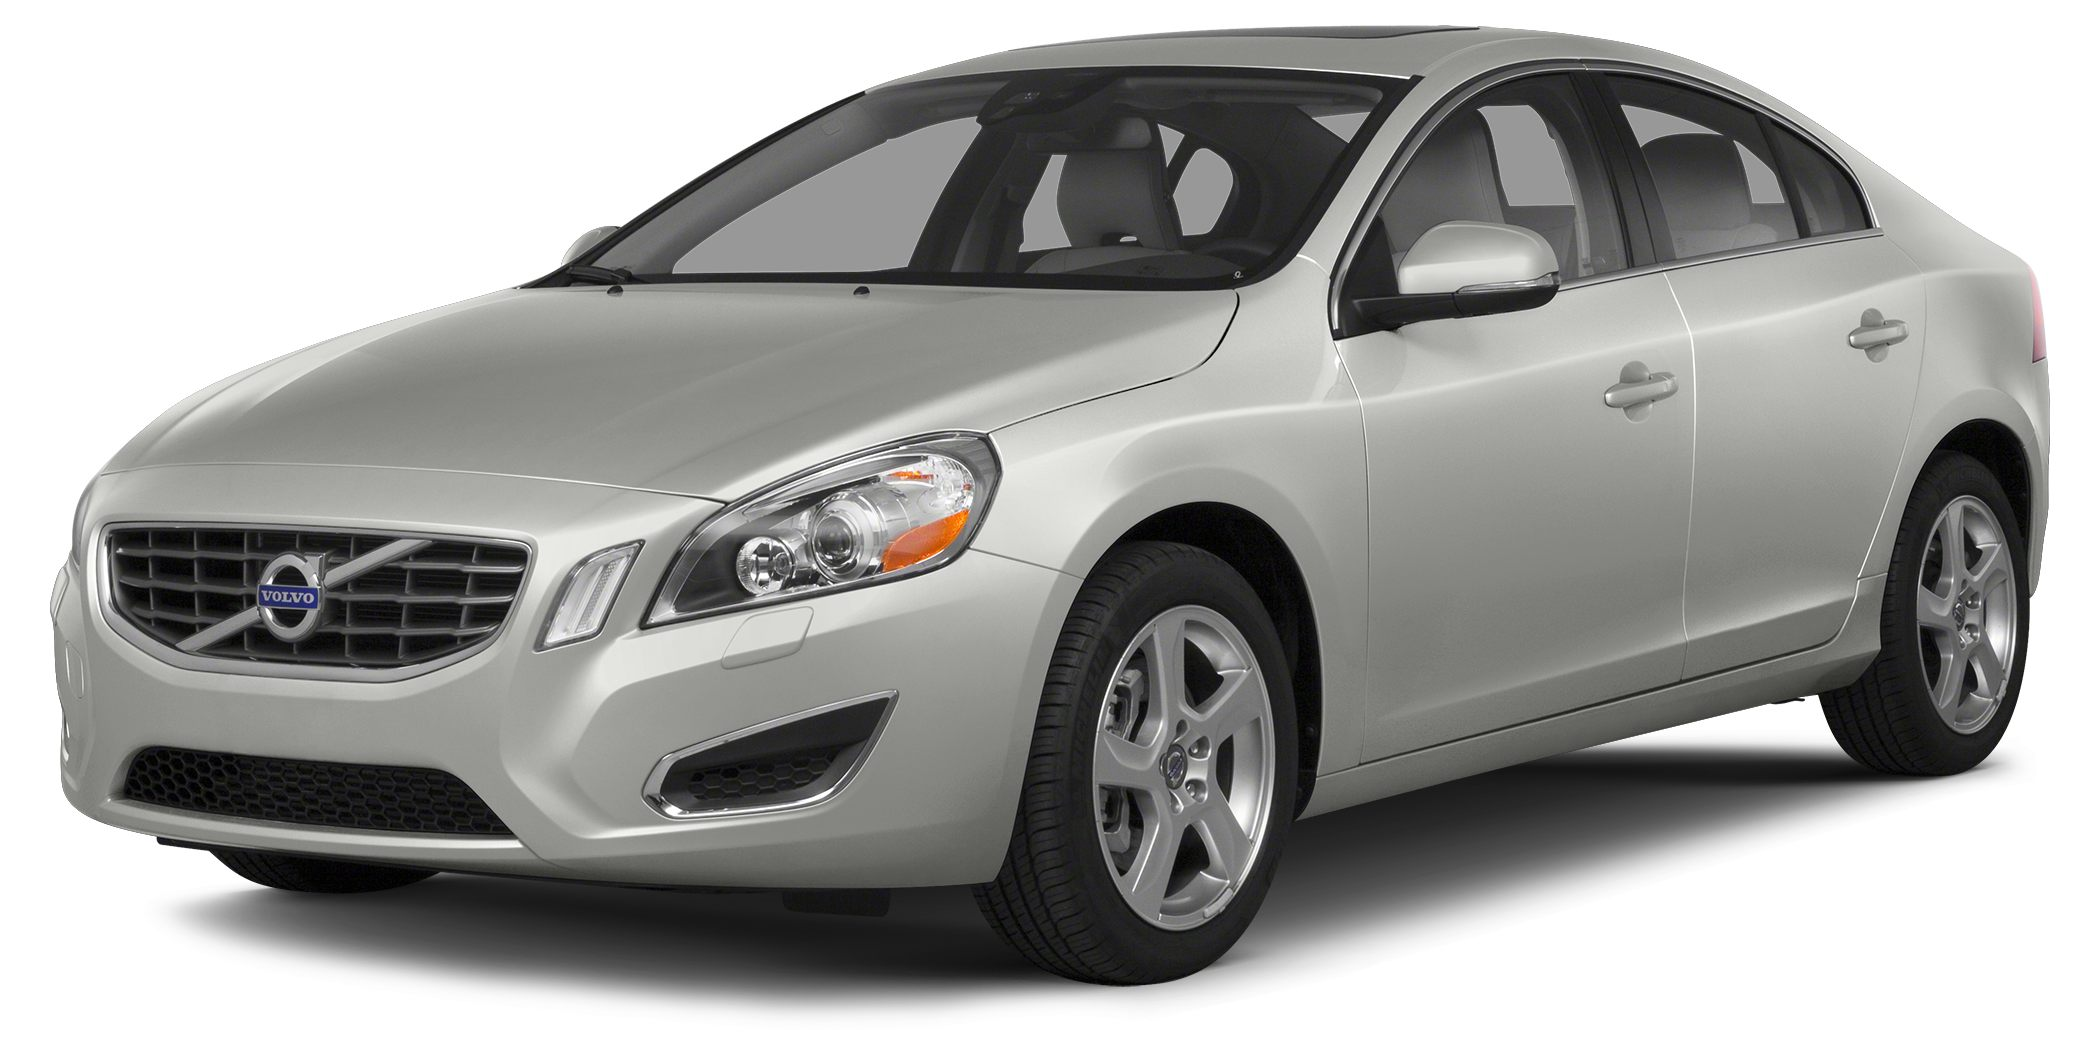 2013 Volvo S60 T5 PLATINUM PACKAGE NAVIGATION  VOLVO WARRANTY LIKE NEW  ONE OWNERCLEAN